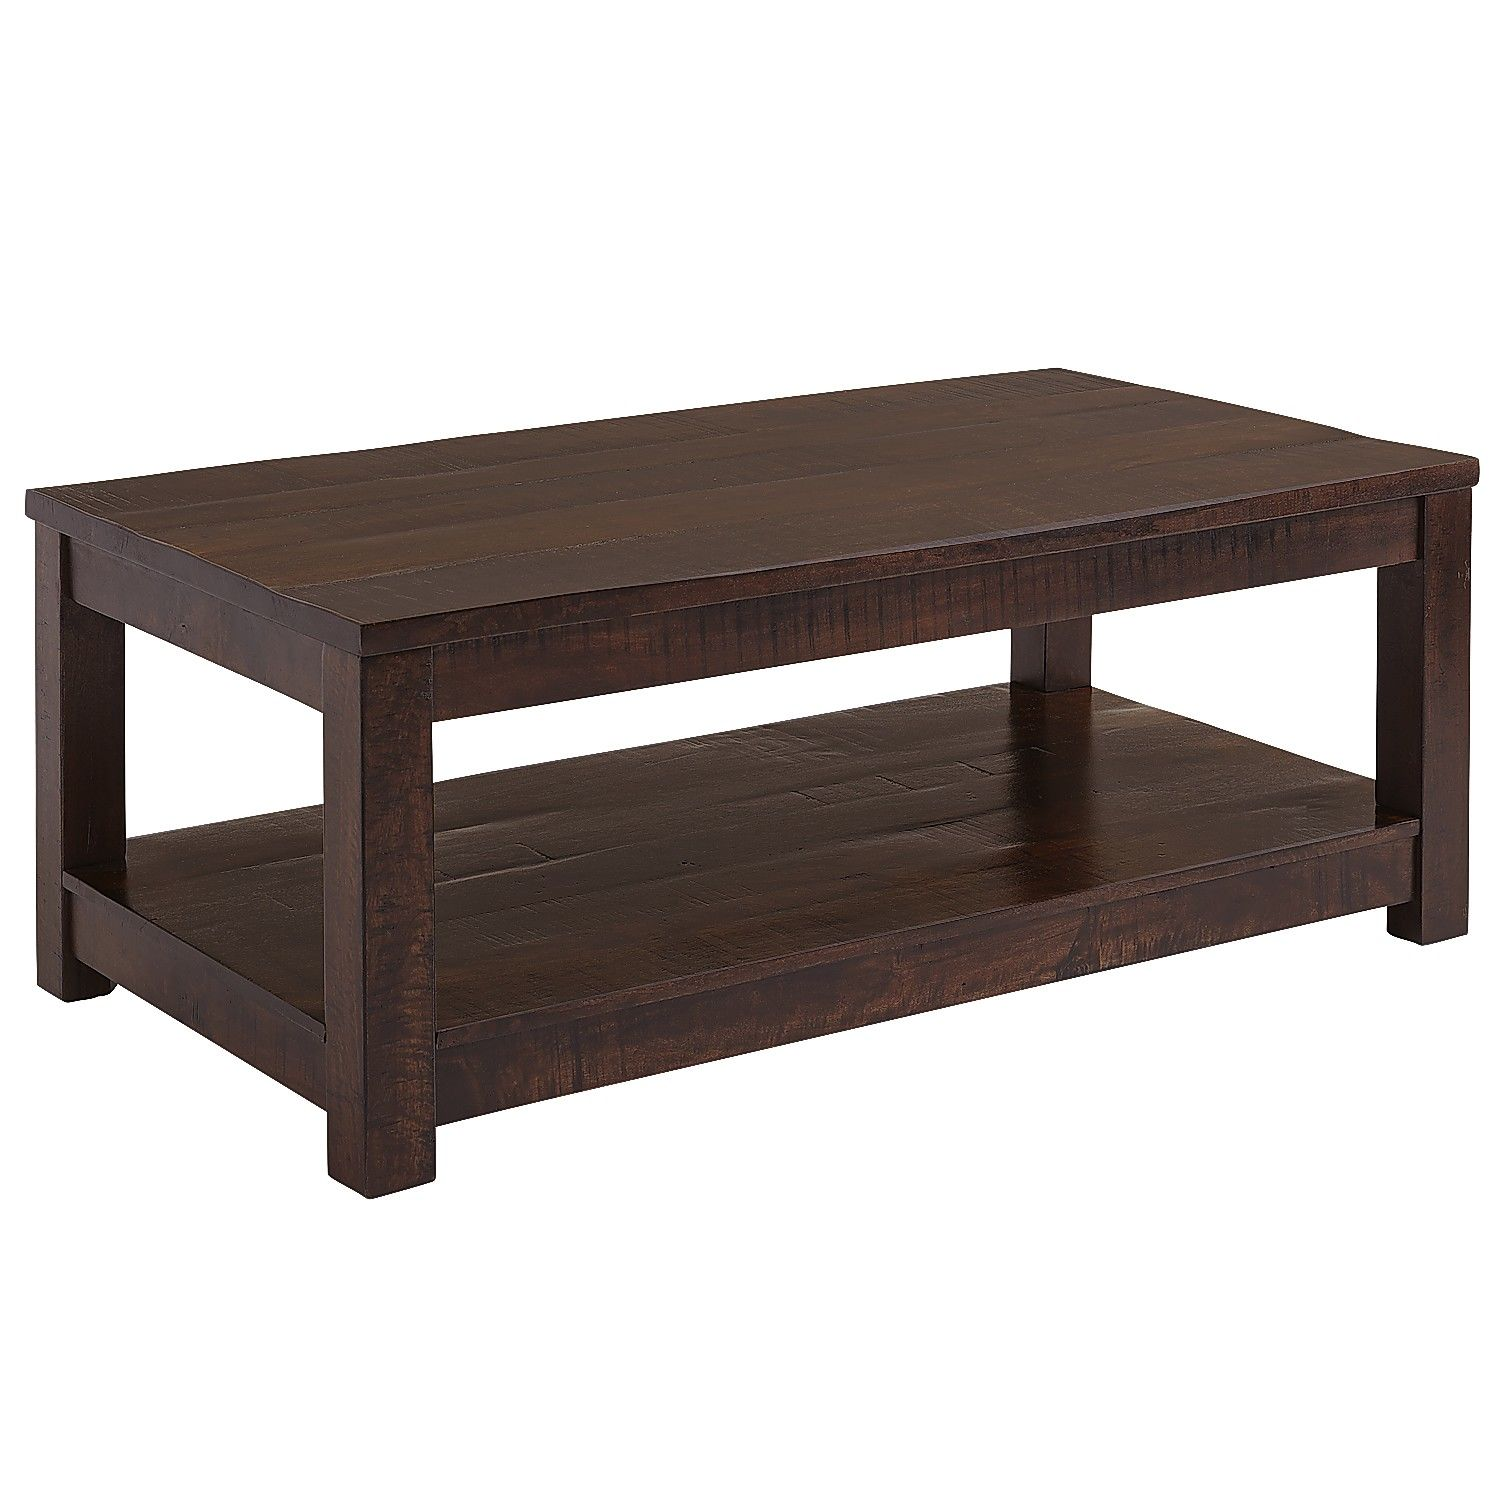 parsons tobacco brown coffee table pier imports round wood pub accent tables oval with shelf small metal garden half moon glass bunnings chairs and nautical sconces indoor